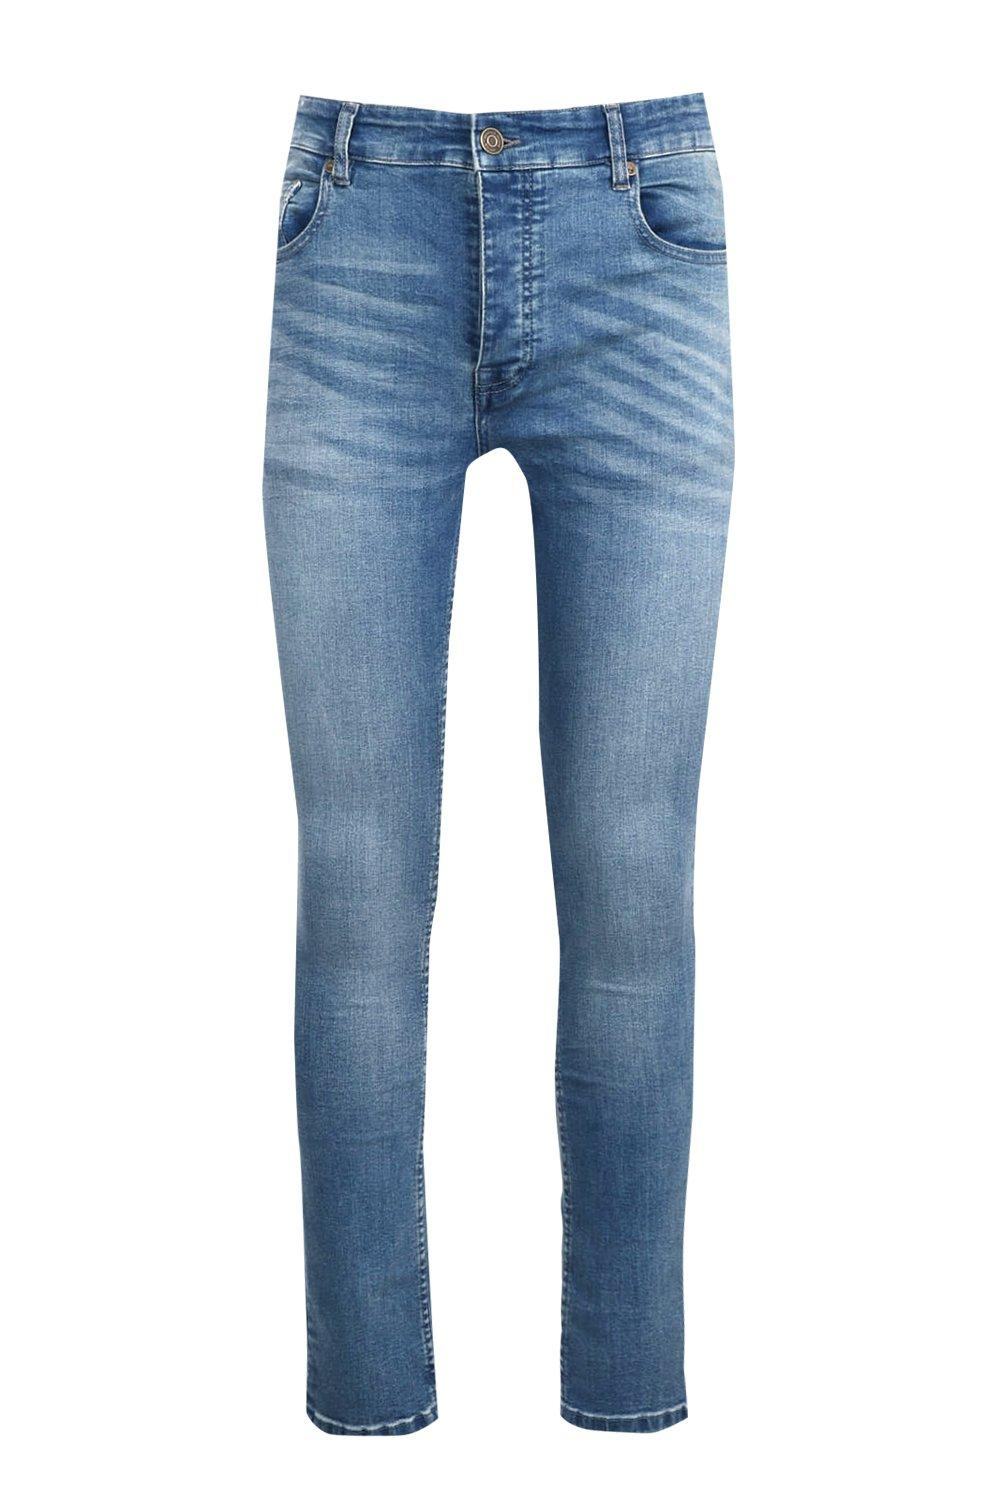 boohooMAN Stretch Skinny Fit Washed Jean in Mid Blue